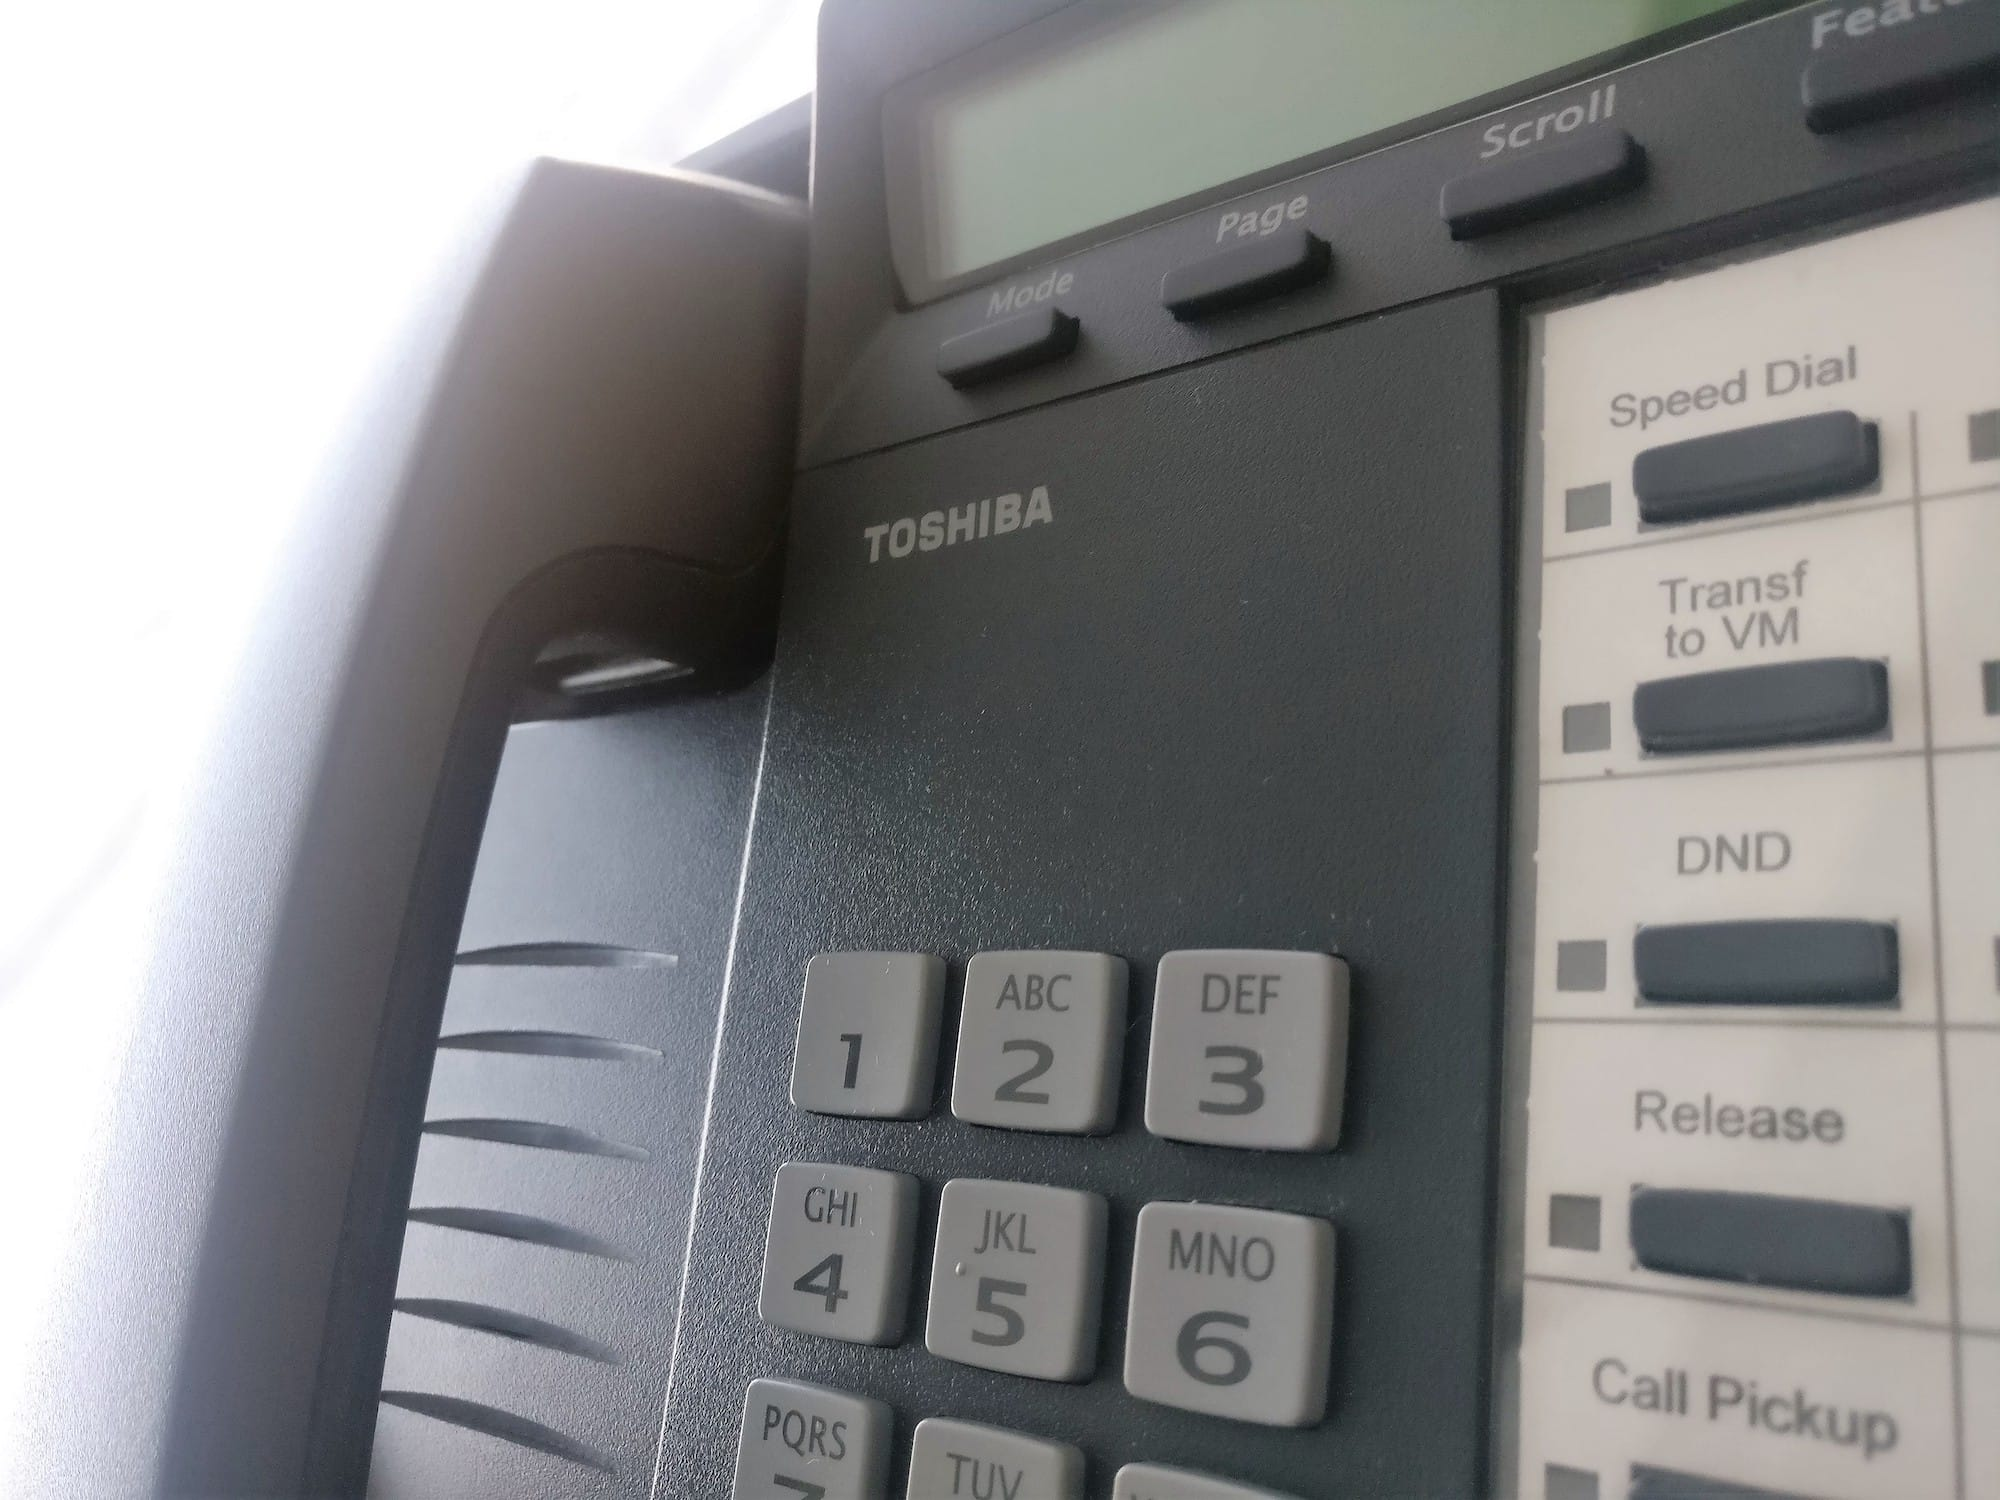 TOSHIBA phone systems end of life – now what? - Featured Image